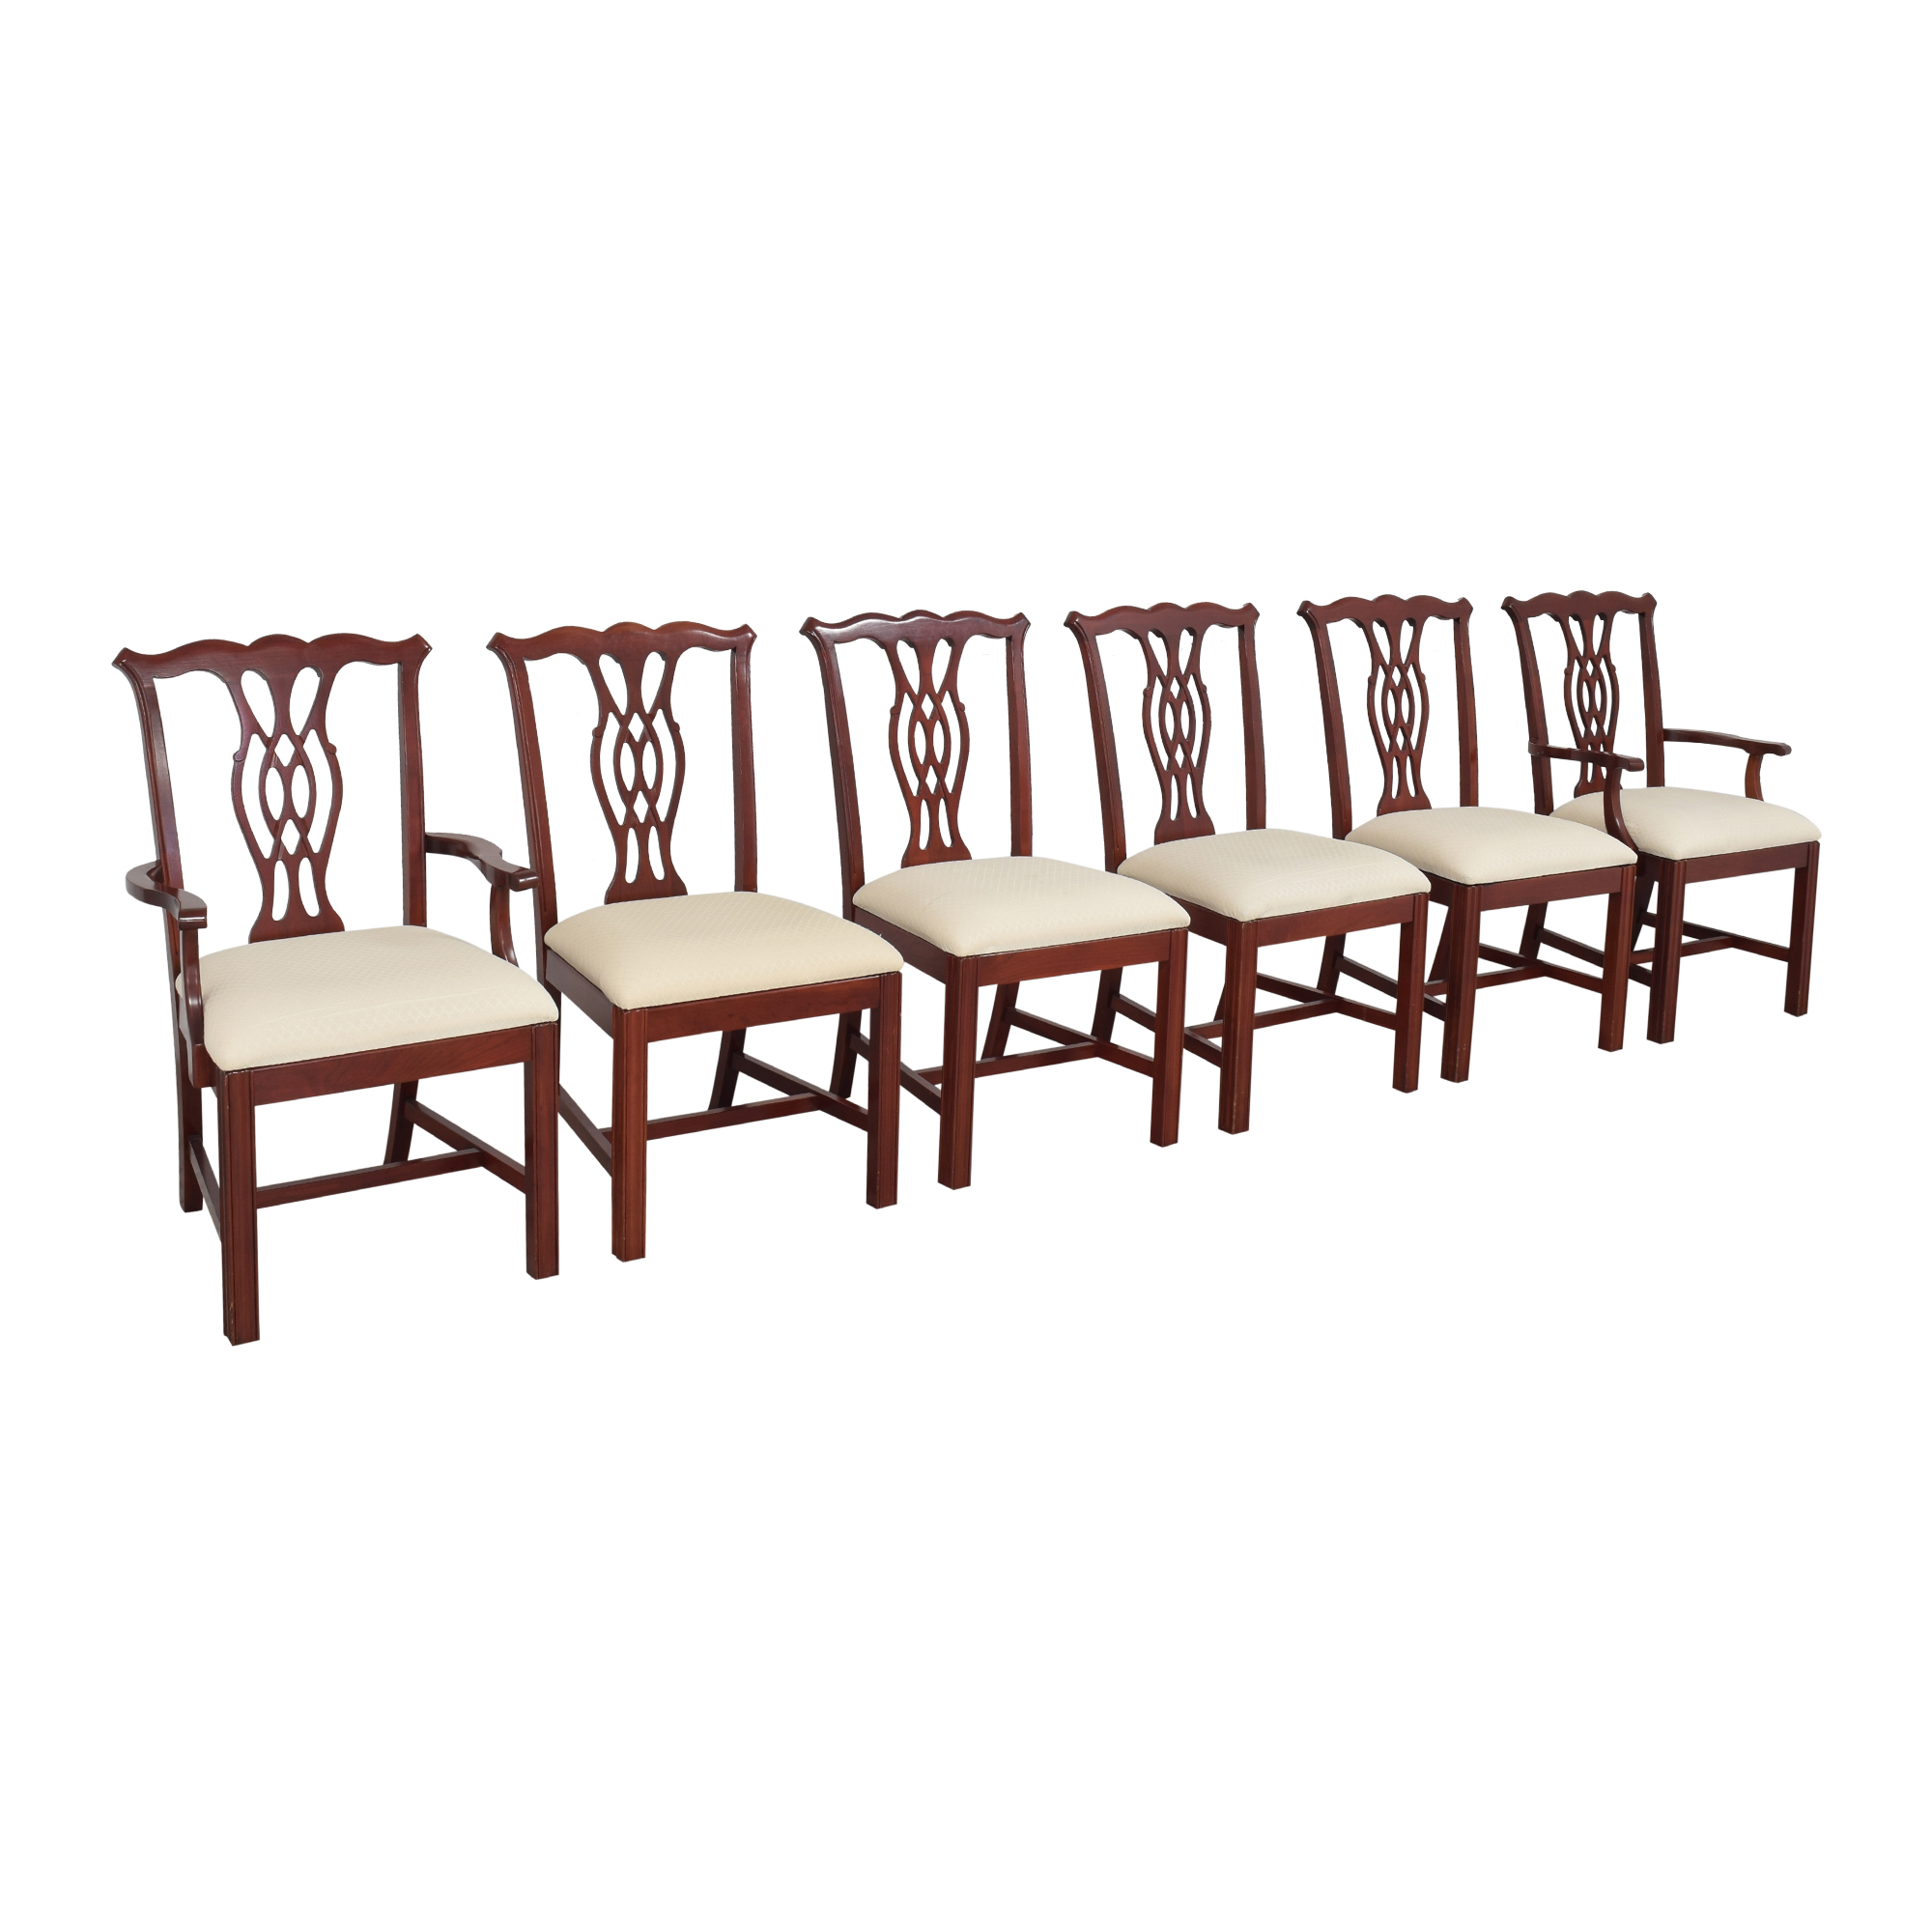 buy The Colonial Furniture Company The Colonial Furniture Company Chippendale-Style Dining Chairs online